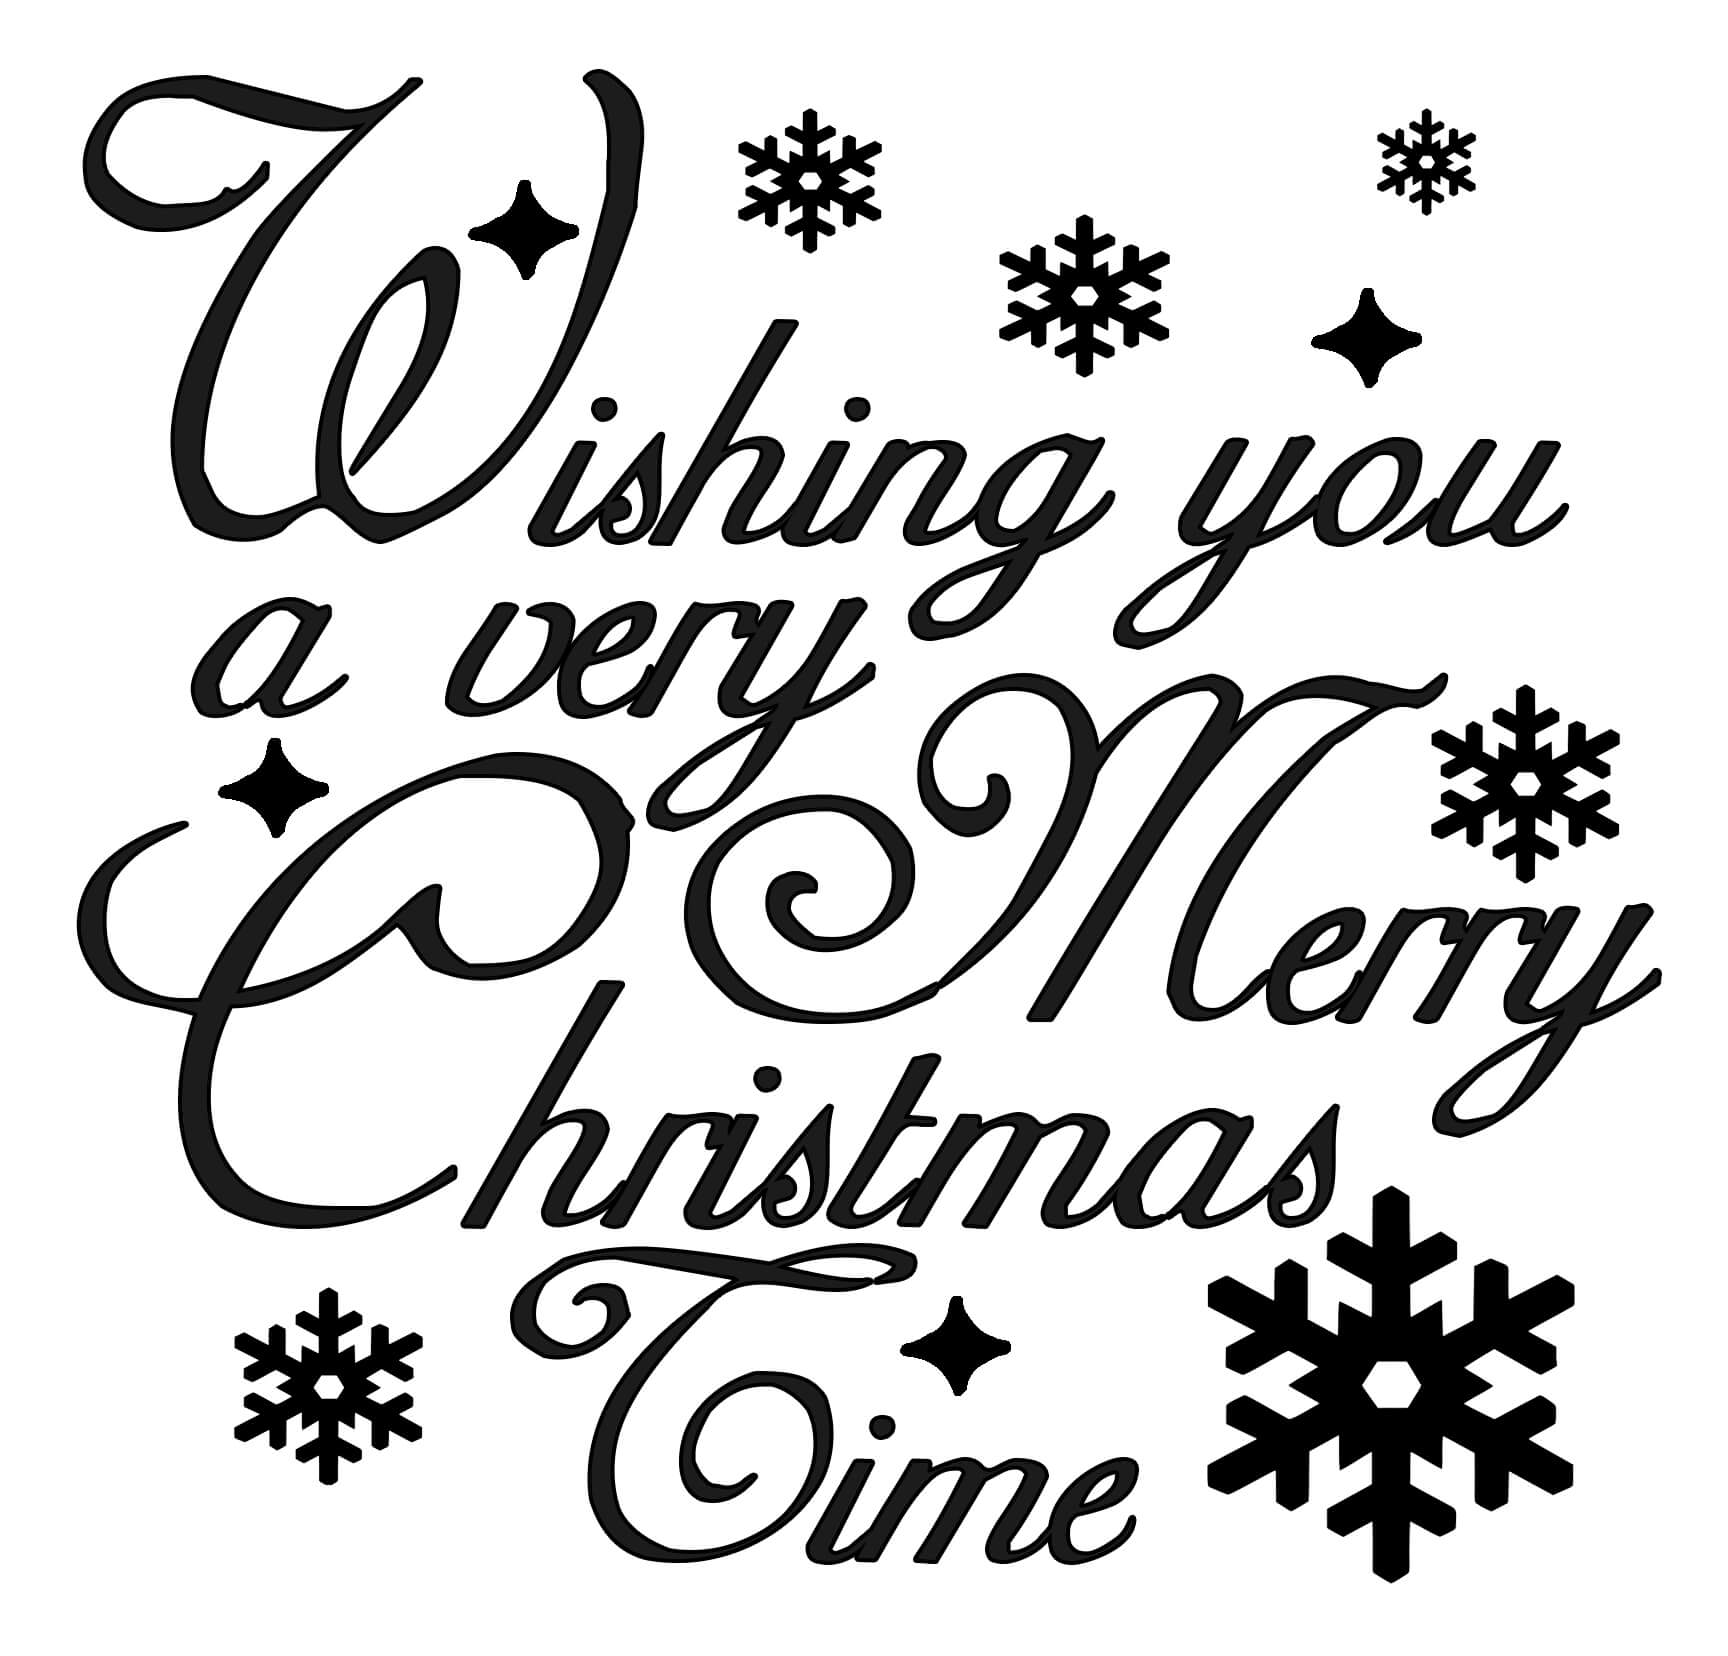 Free Wishing you a very Merry Christmas SVG File